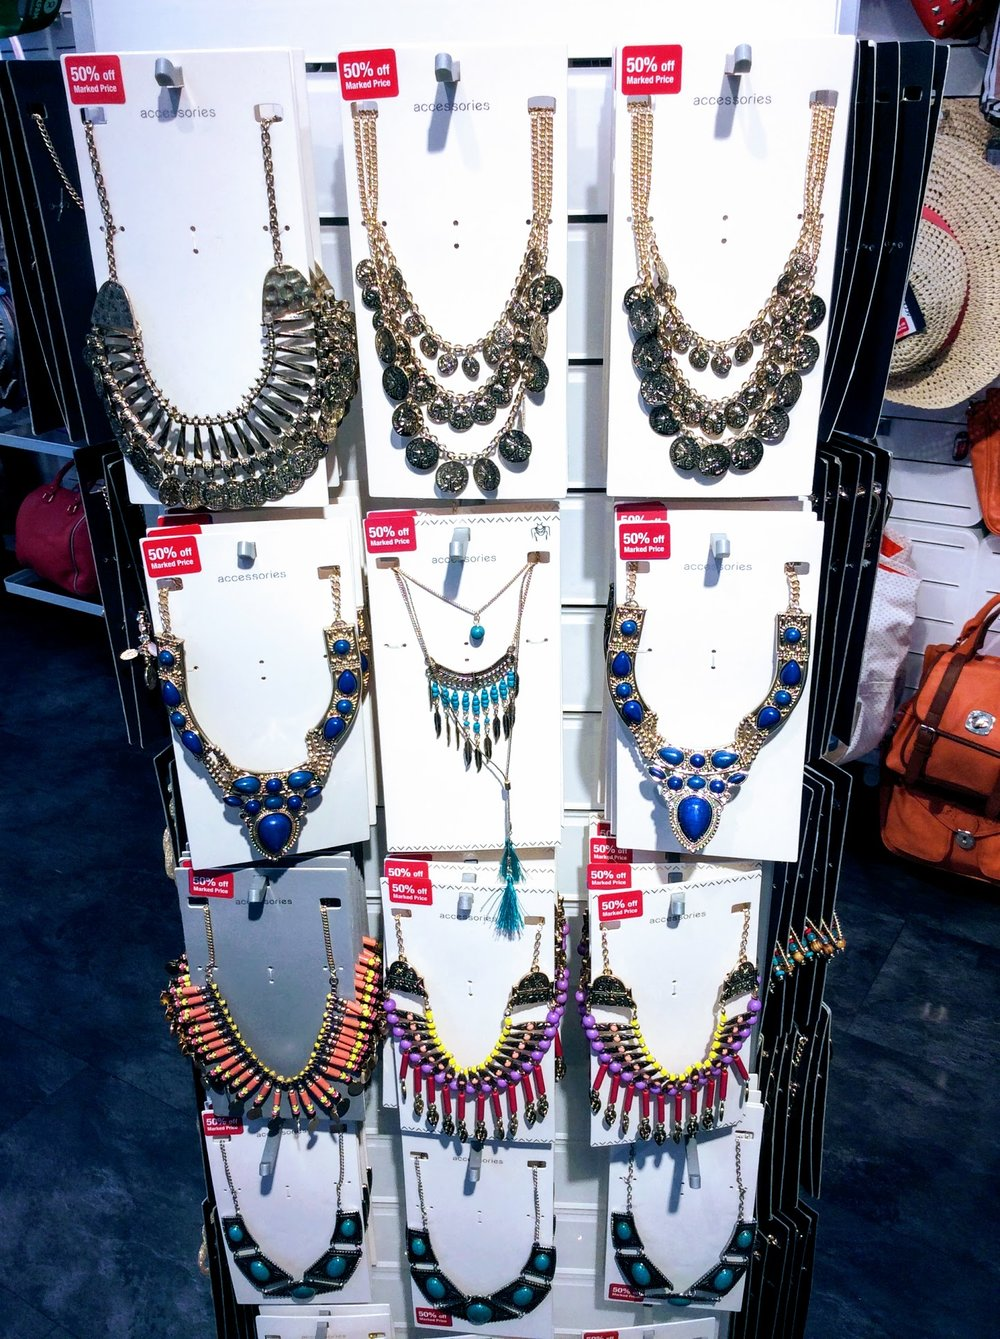 Great neckpieces from SIX4GOOD.